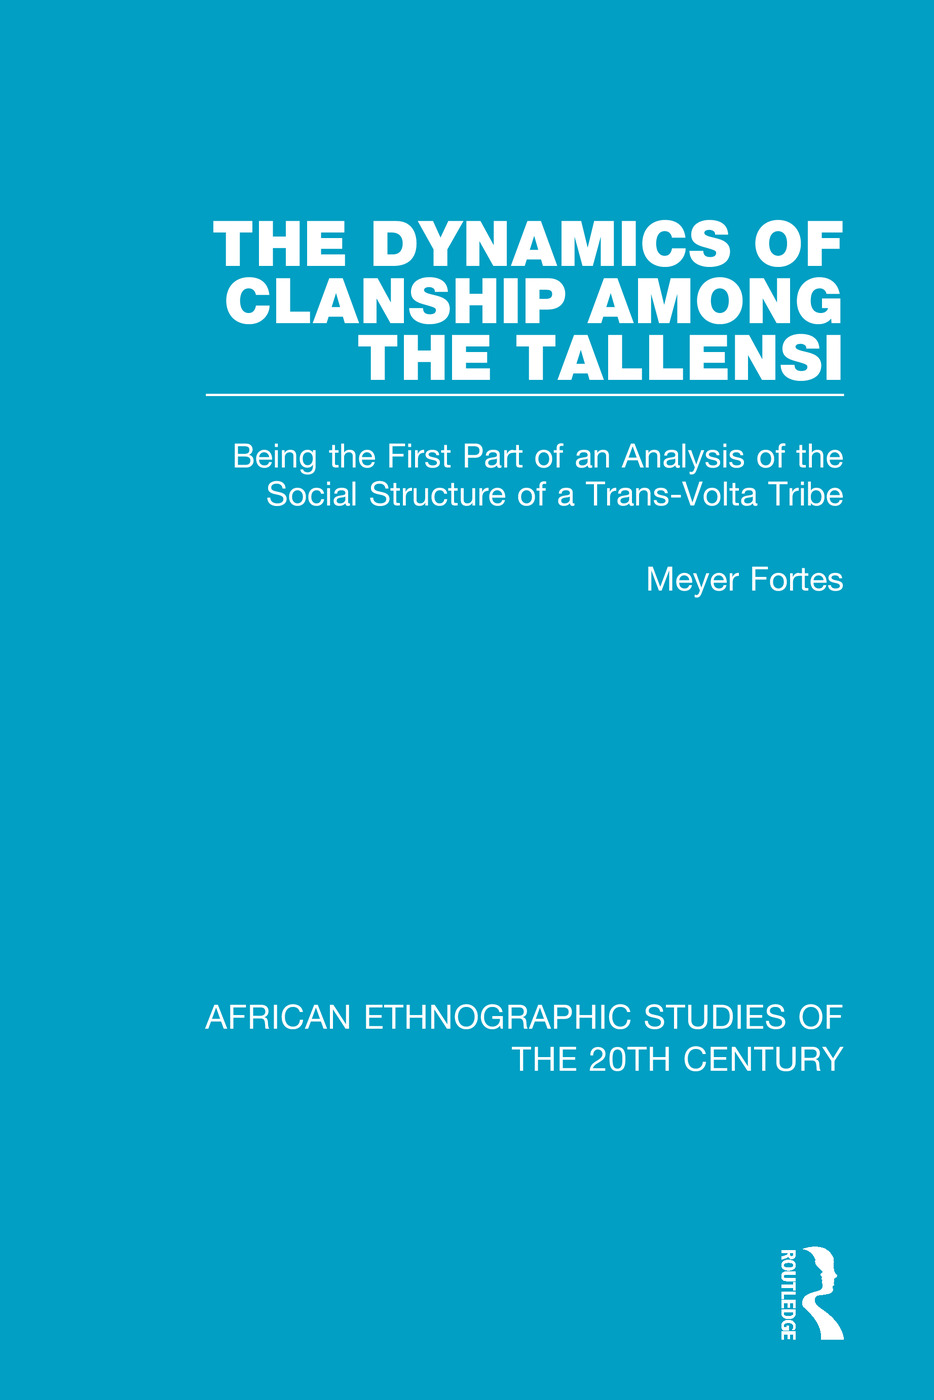 The Dynamics of Clanship Among the Tallensi: Being the First Part of an Analysis of the Social Structure of a Trans-Volta Tribe book cover